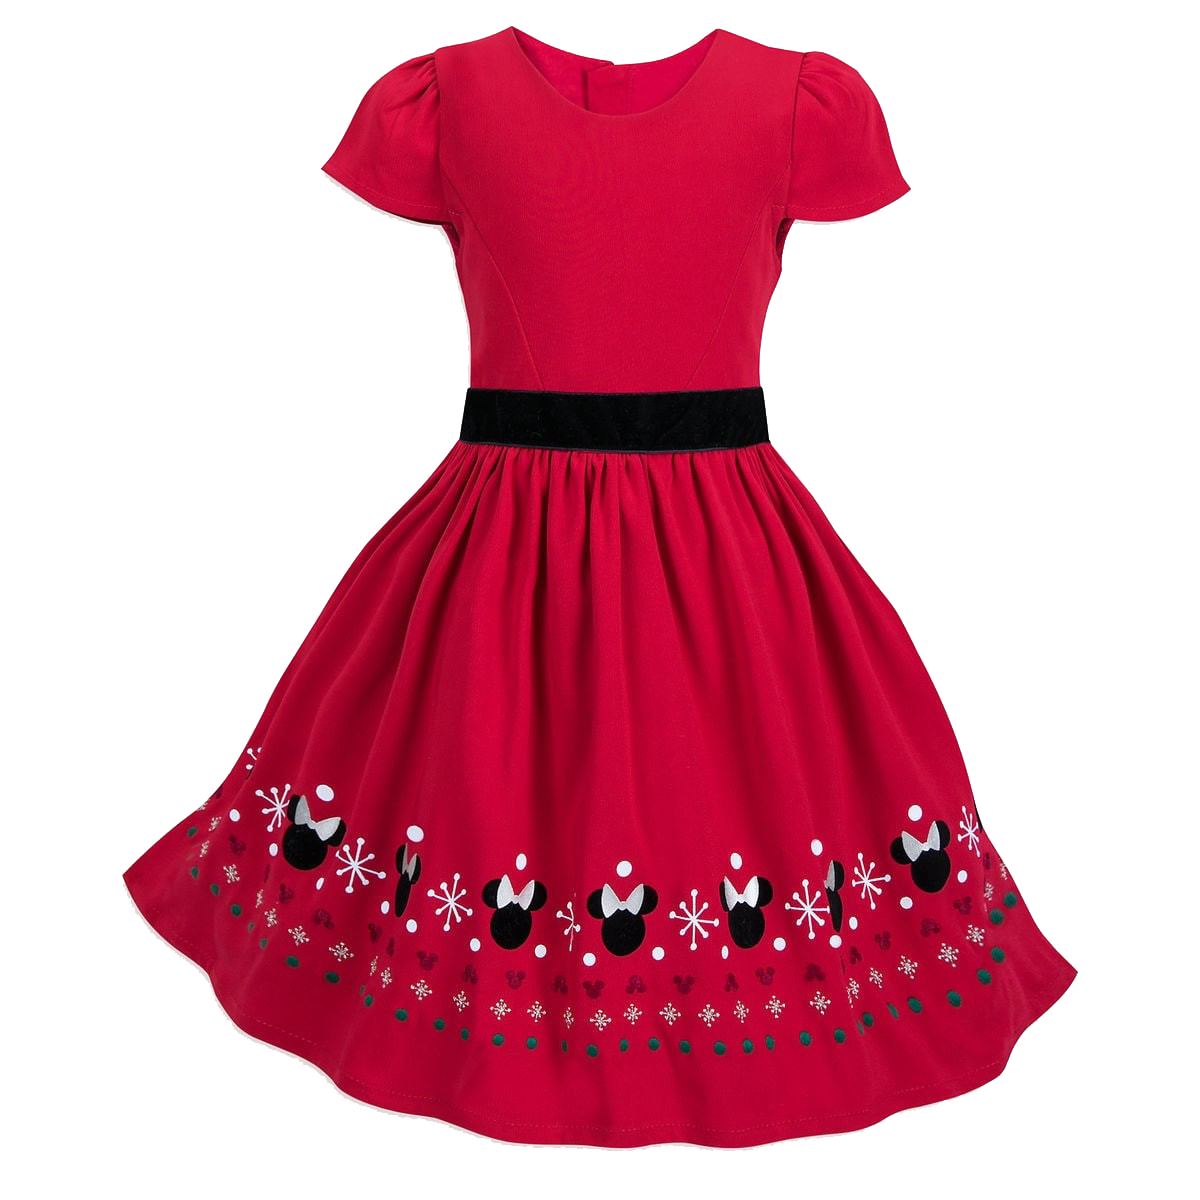 Dress PNG Clipart.